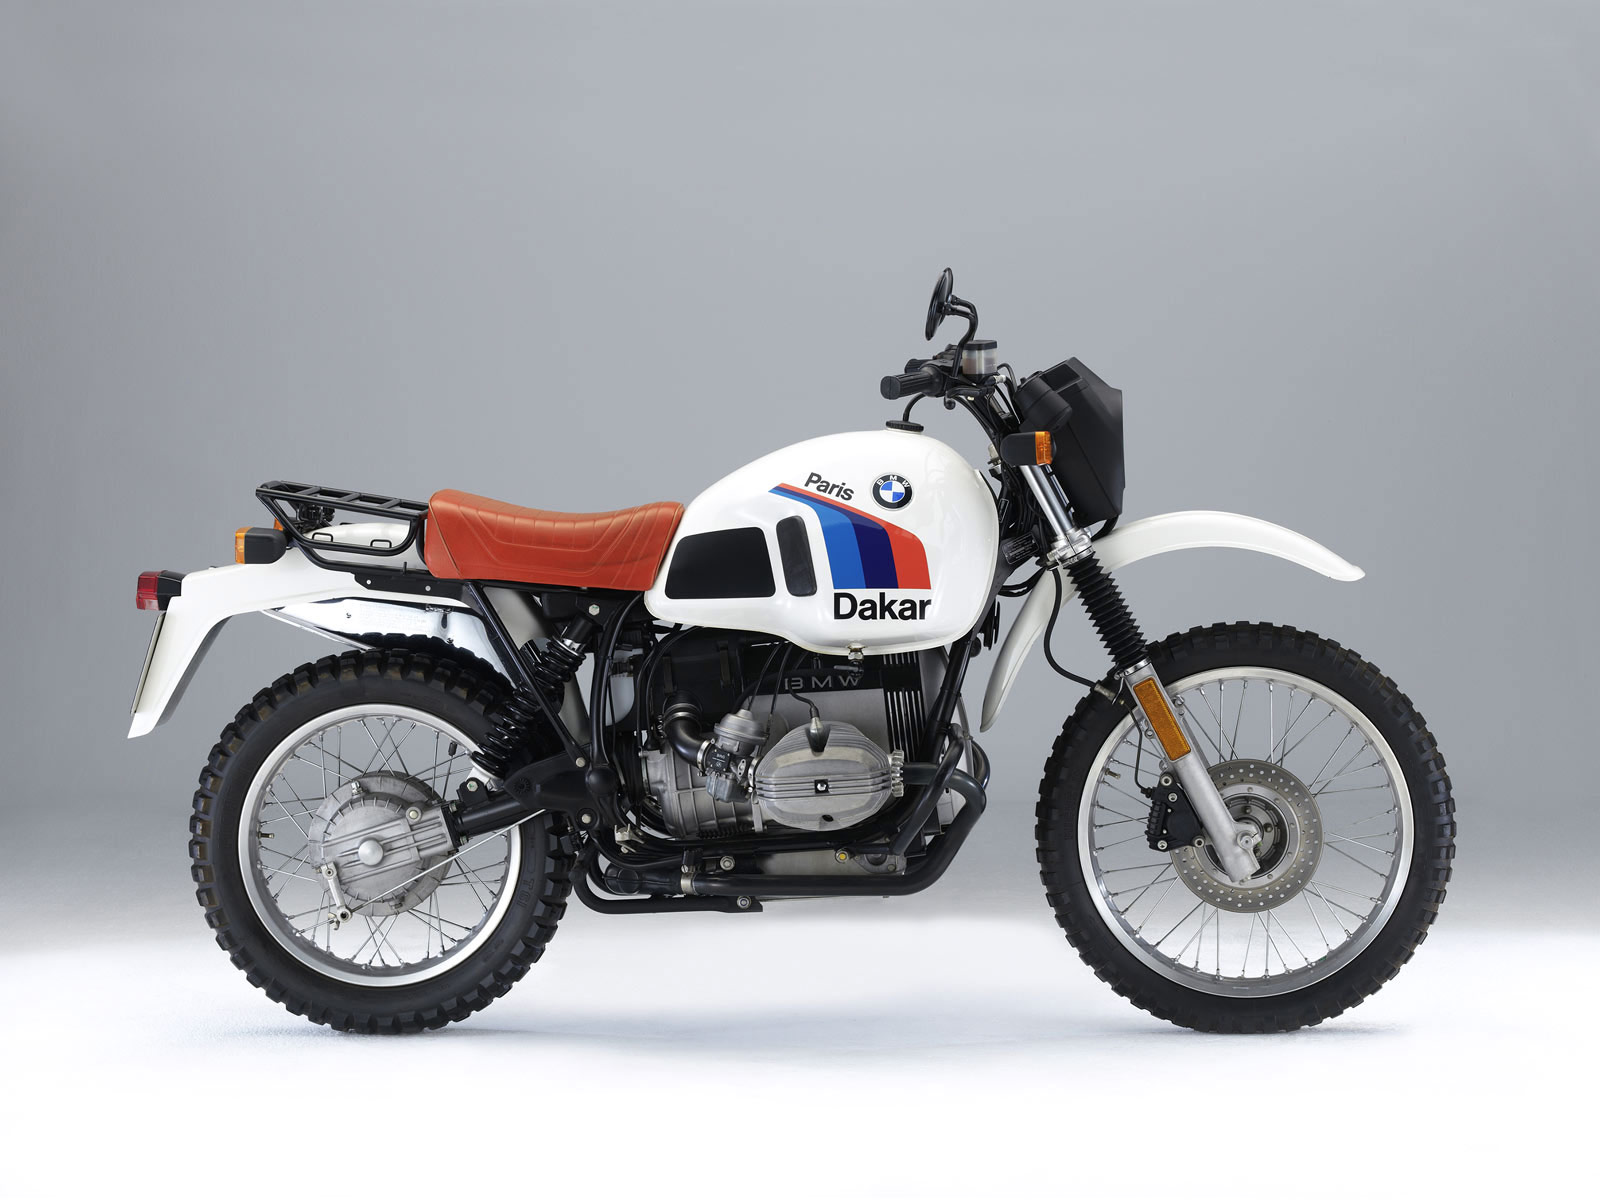 2010 BMW R80GS Paris Dakar Motorcycle Wallpapers